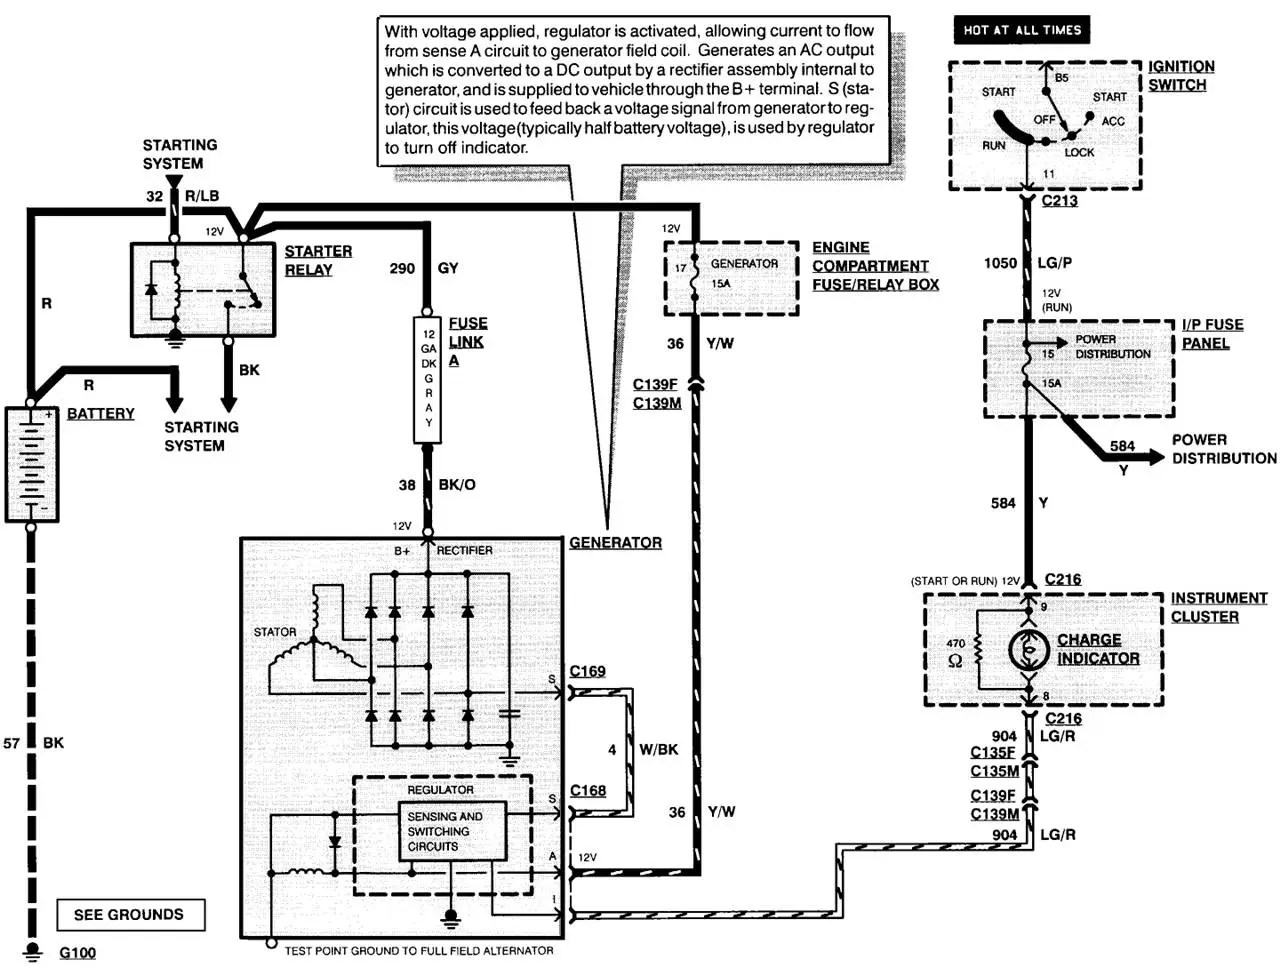 1994 f150 wiring diagram battery and alternator wiring diagram online94 gm alternator wiring wiring library 1994 [ 1280 x 967 Pixel ]